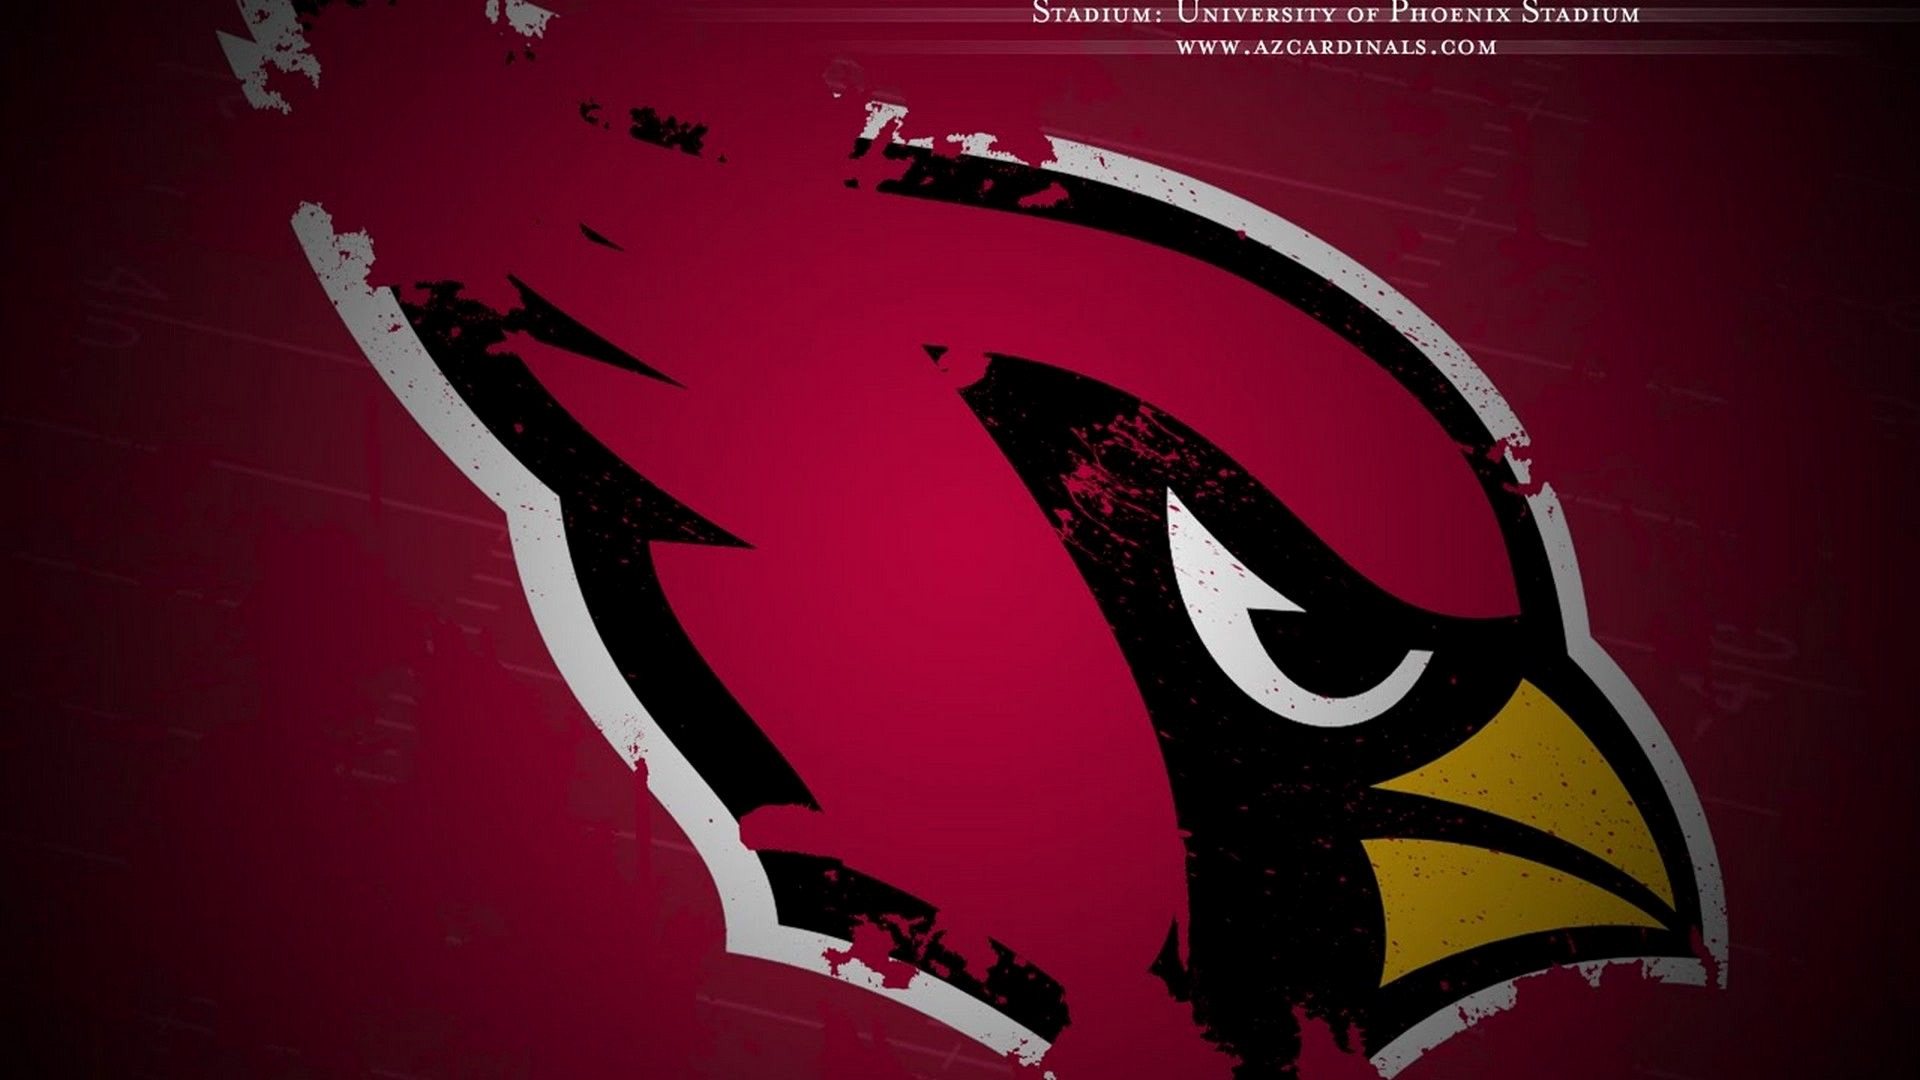 Arizona Cardinals Wallpaper Theme Live Source Cool Wallpapers 2018 78 Background Pictures